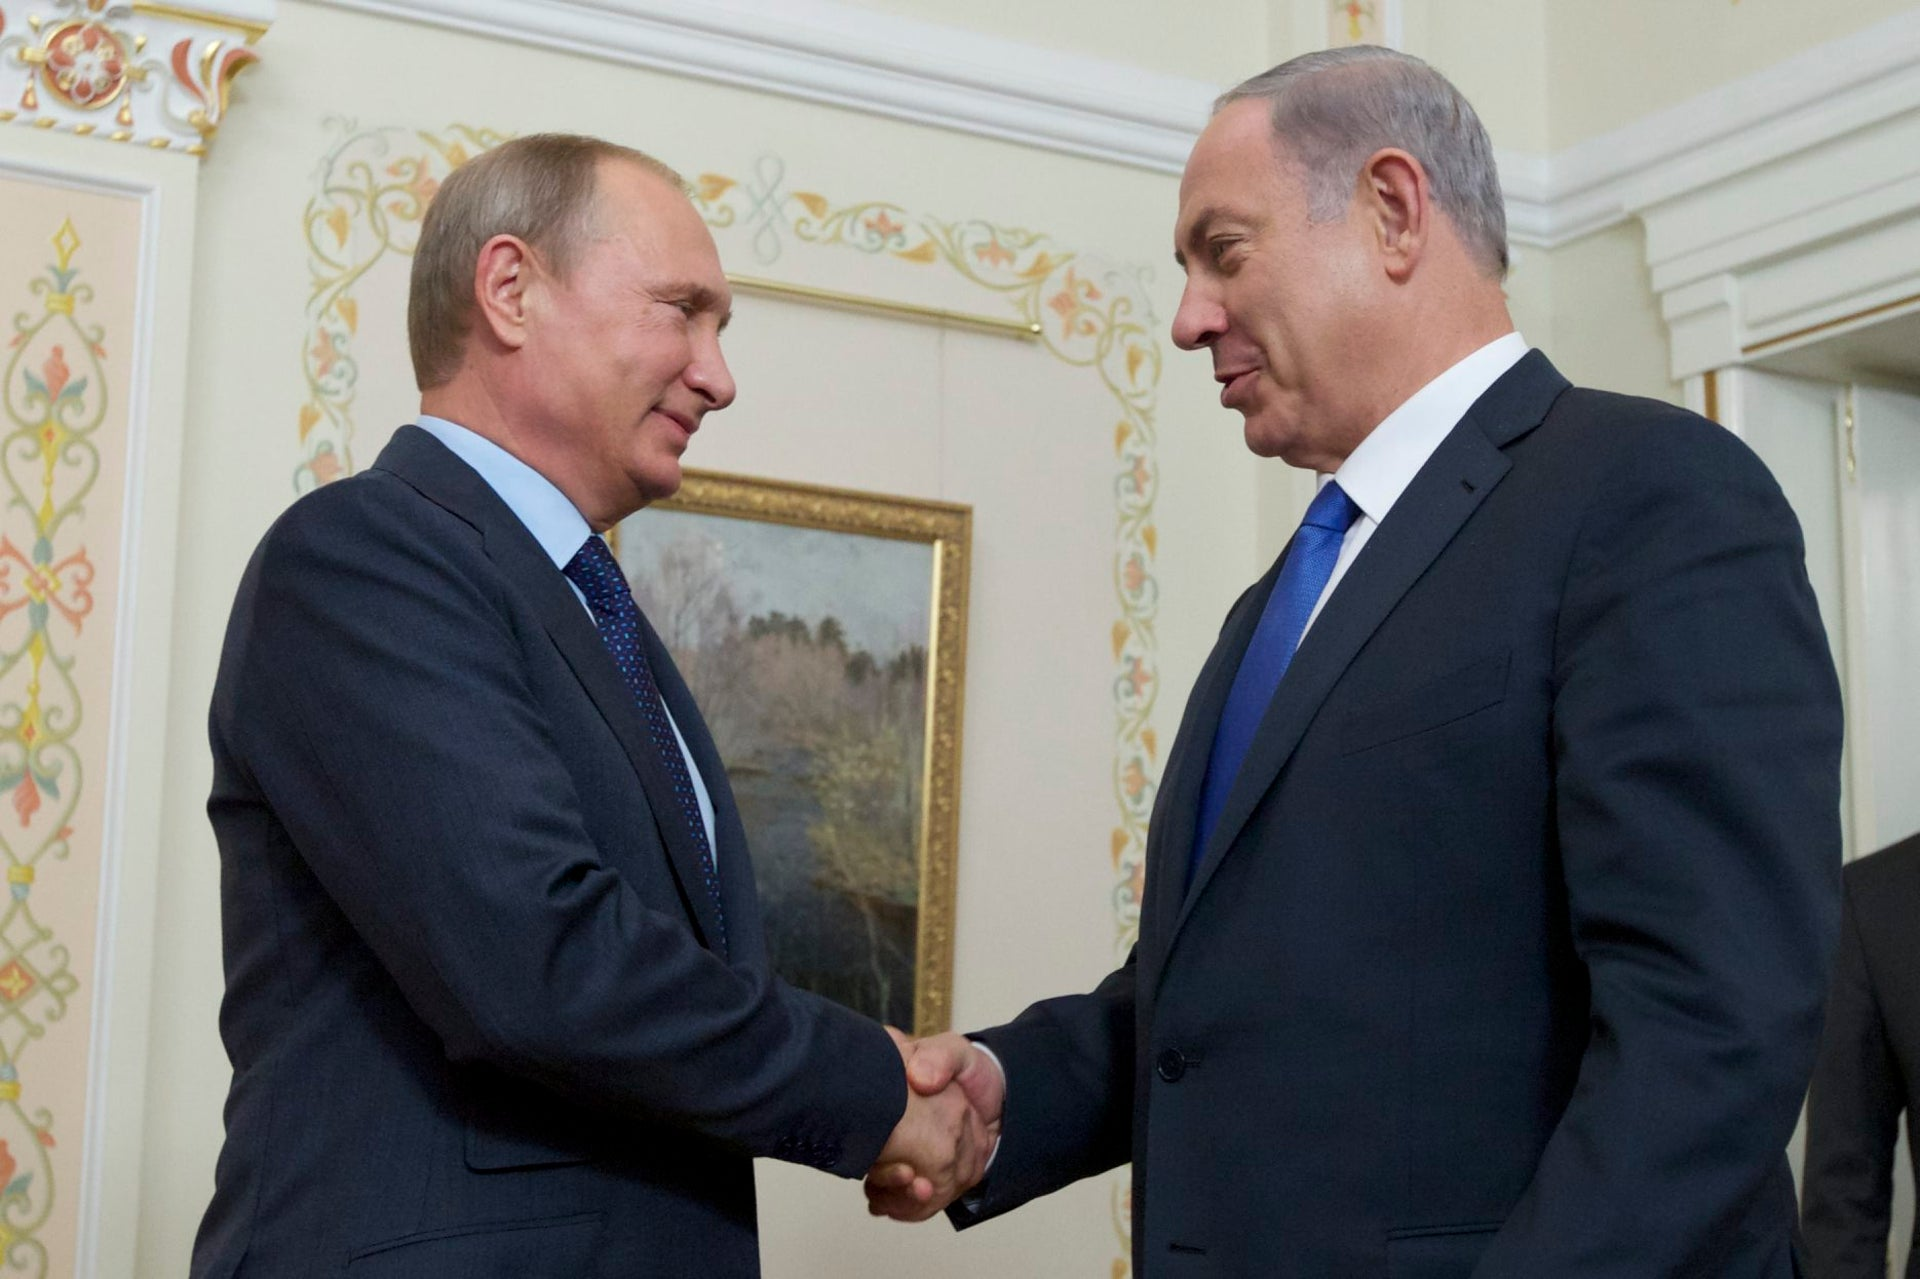 Russian President Vladimir Putin shakes hands with Israeli Prime Minister Benjamin Netanyahu, right, during their Sept. 21 meeting in Moscow.